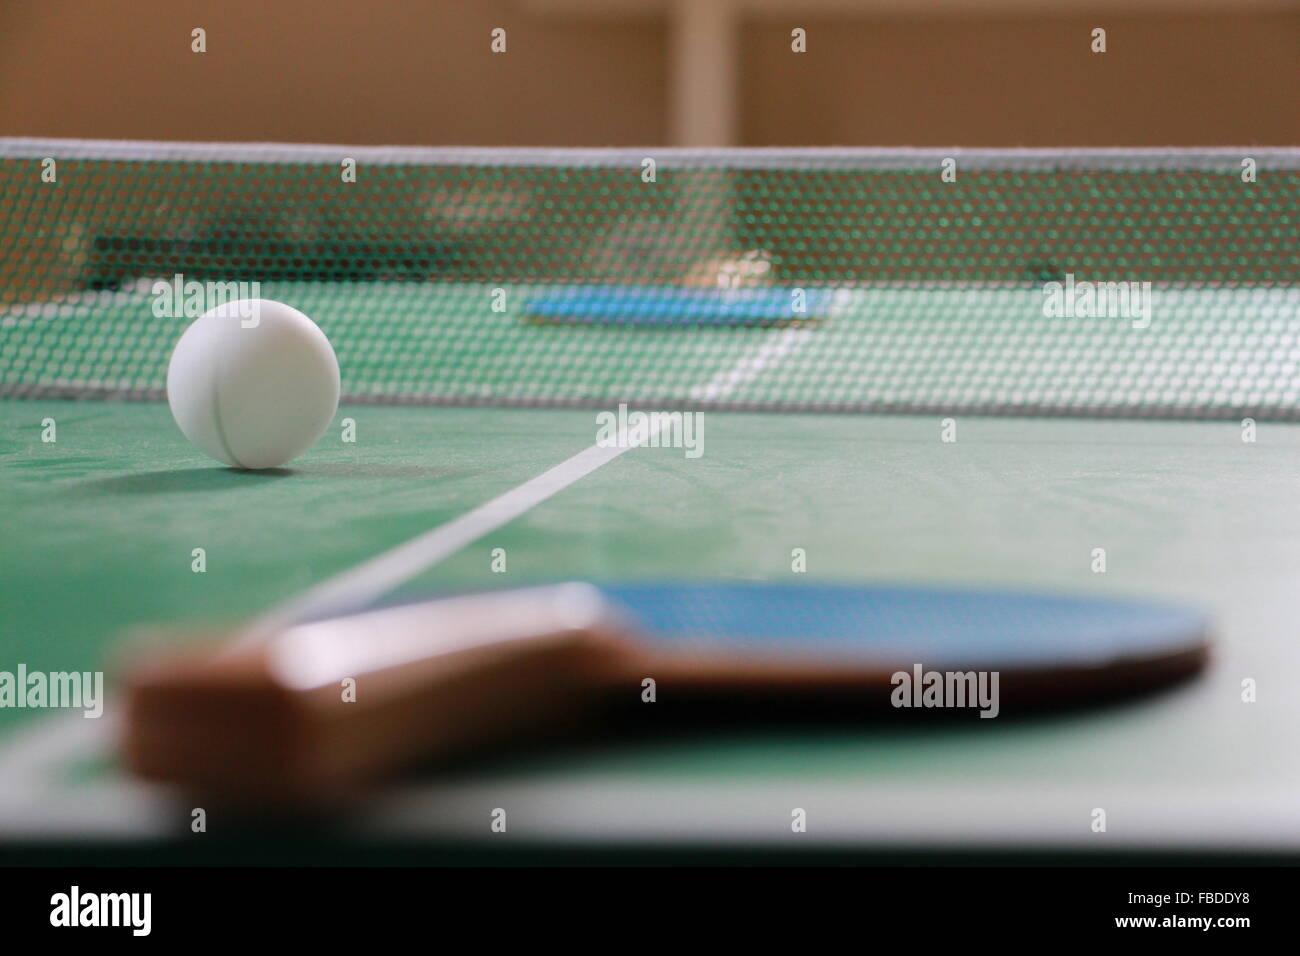 Table Tennis Table And Paddles - Stock Image